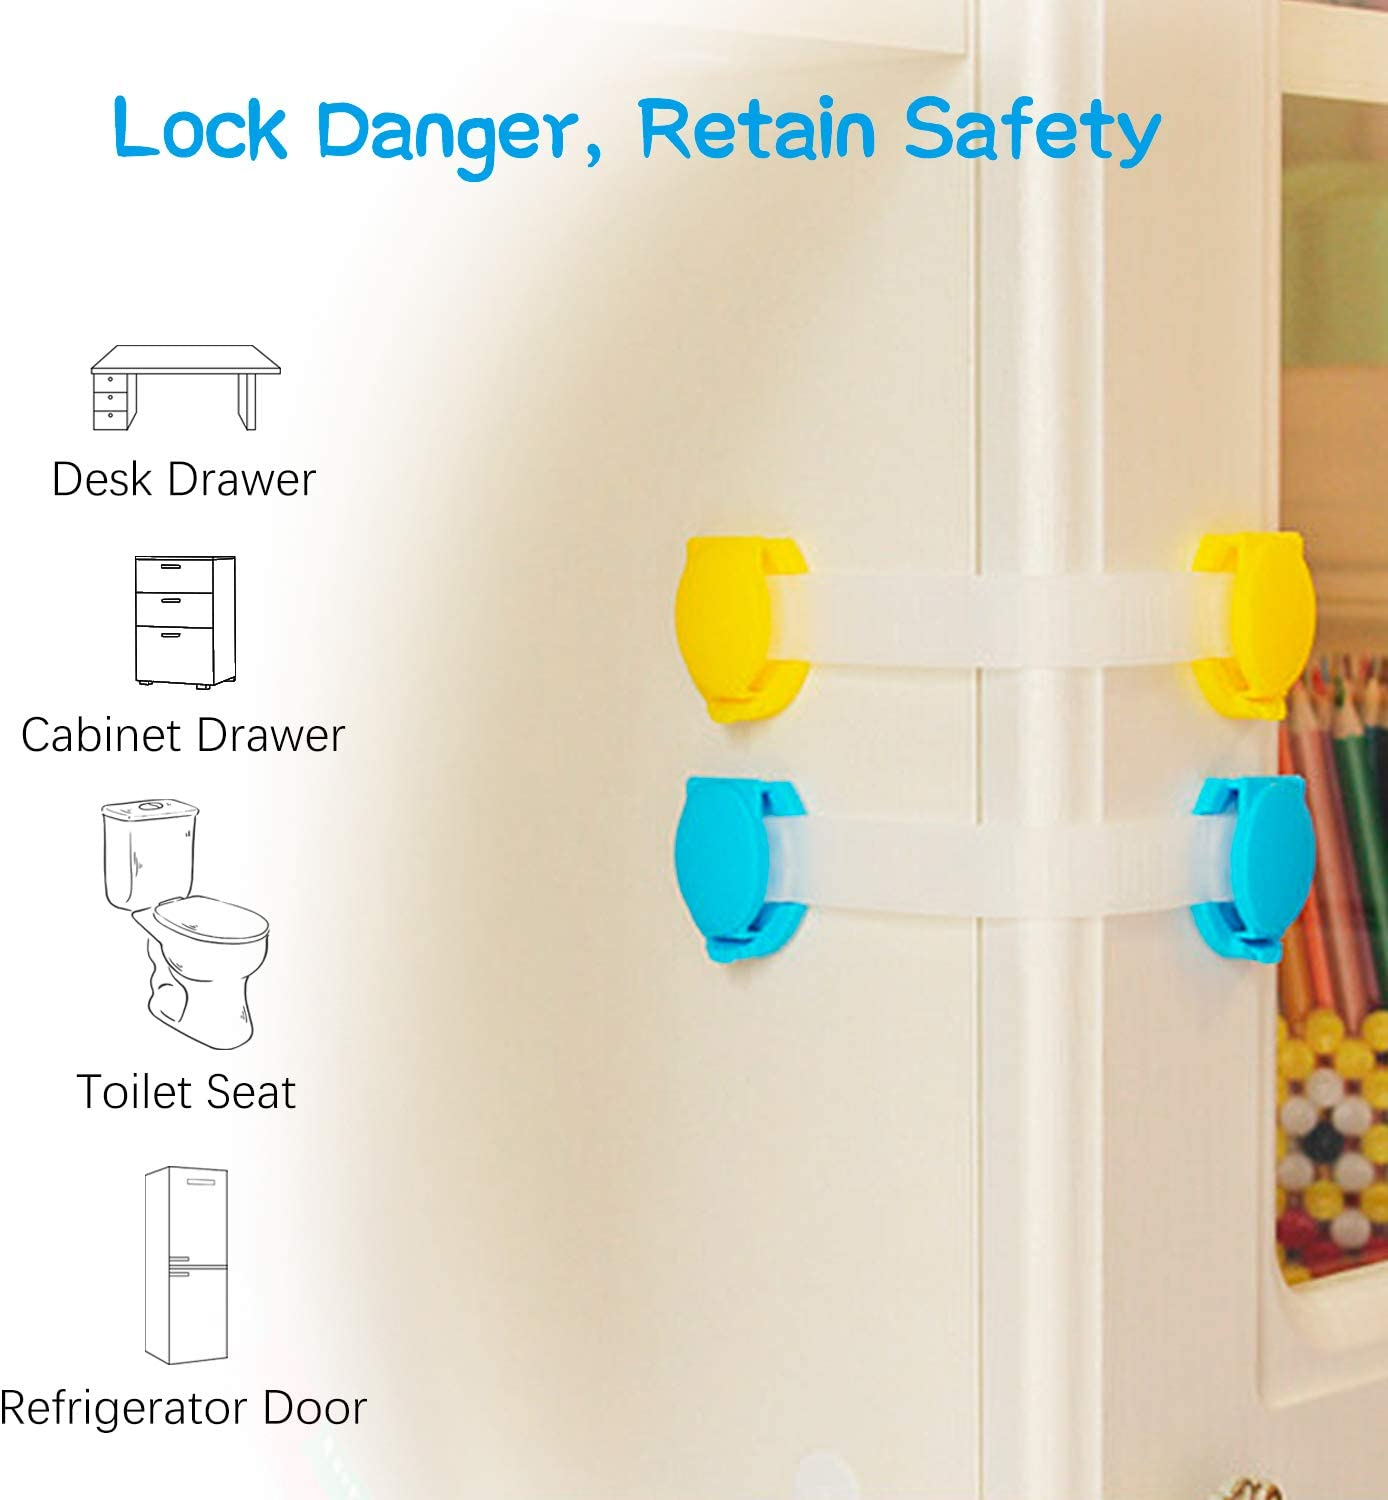 Child Safety Cupboard Locks,Inpher Baby Lock 10 Locks and 4 Corner Protectors Easy Install 3M Adhesive with Adjustable Strap Latches Cupboards for Proofing Kitchen Cabinets Drawers Fridge Closet Oven